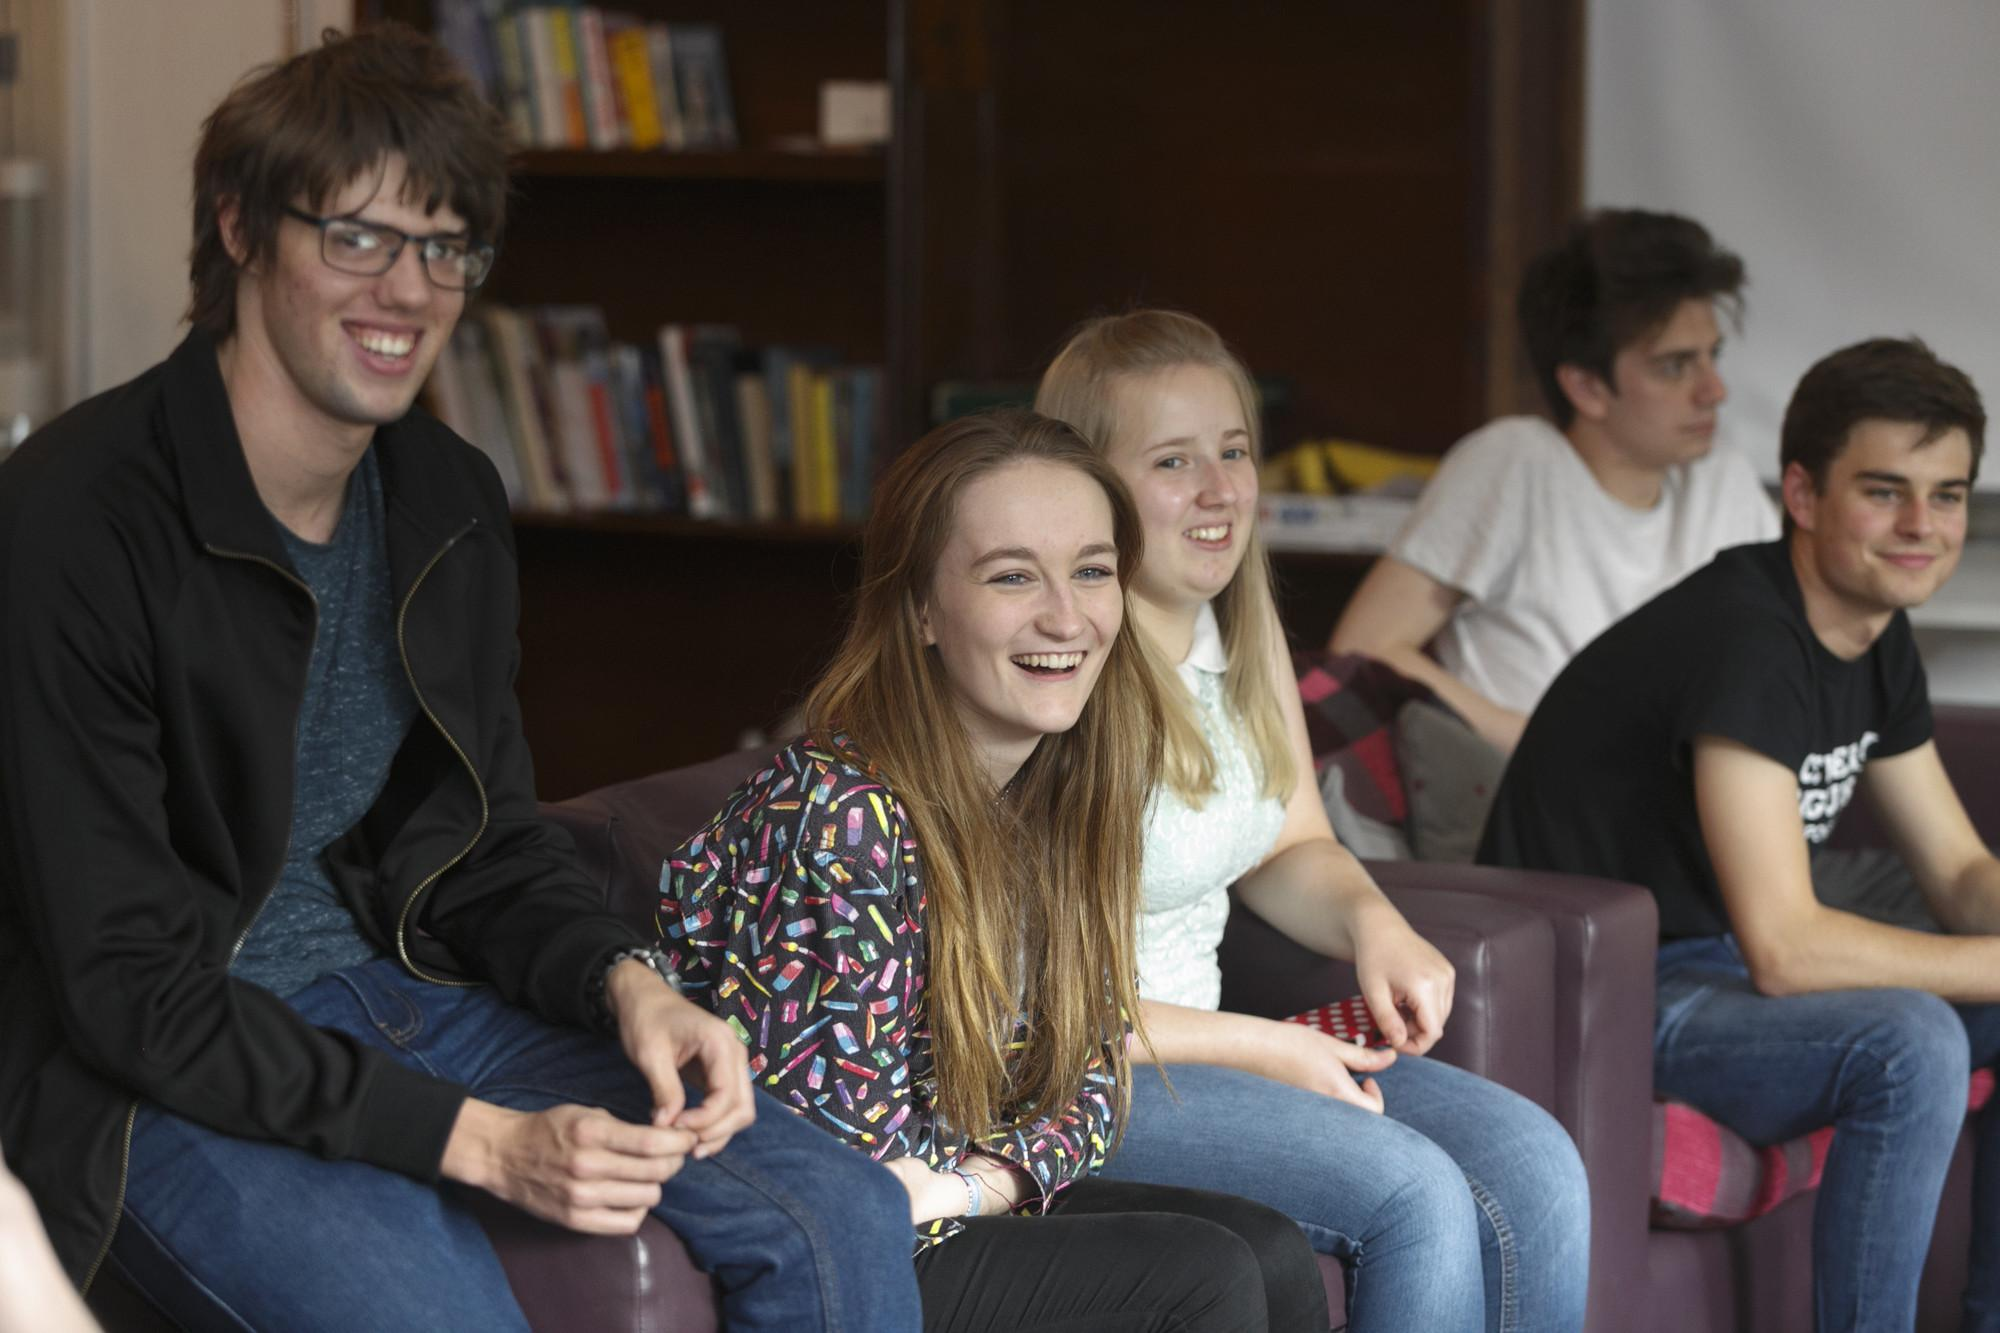 Students at Fitzwilliam College, Cambridge